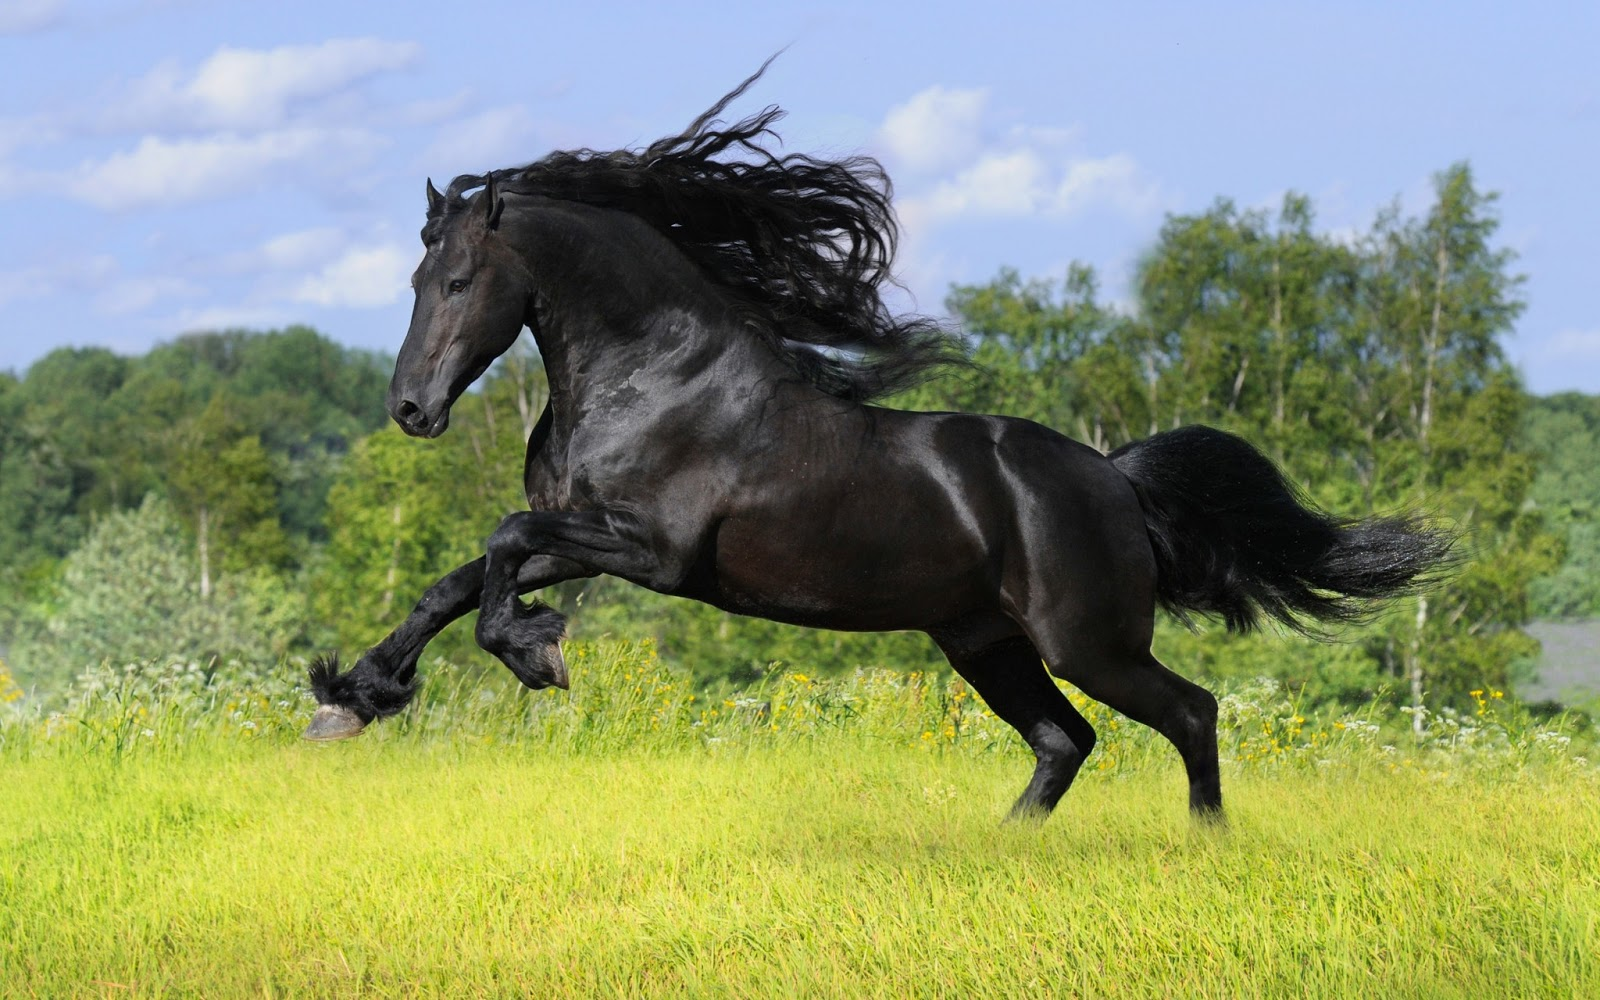 Most Inspiring   Wallpaper Horse Android - horse+wallpapers+hd+(9)  Picture_85653.jpeg